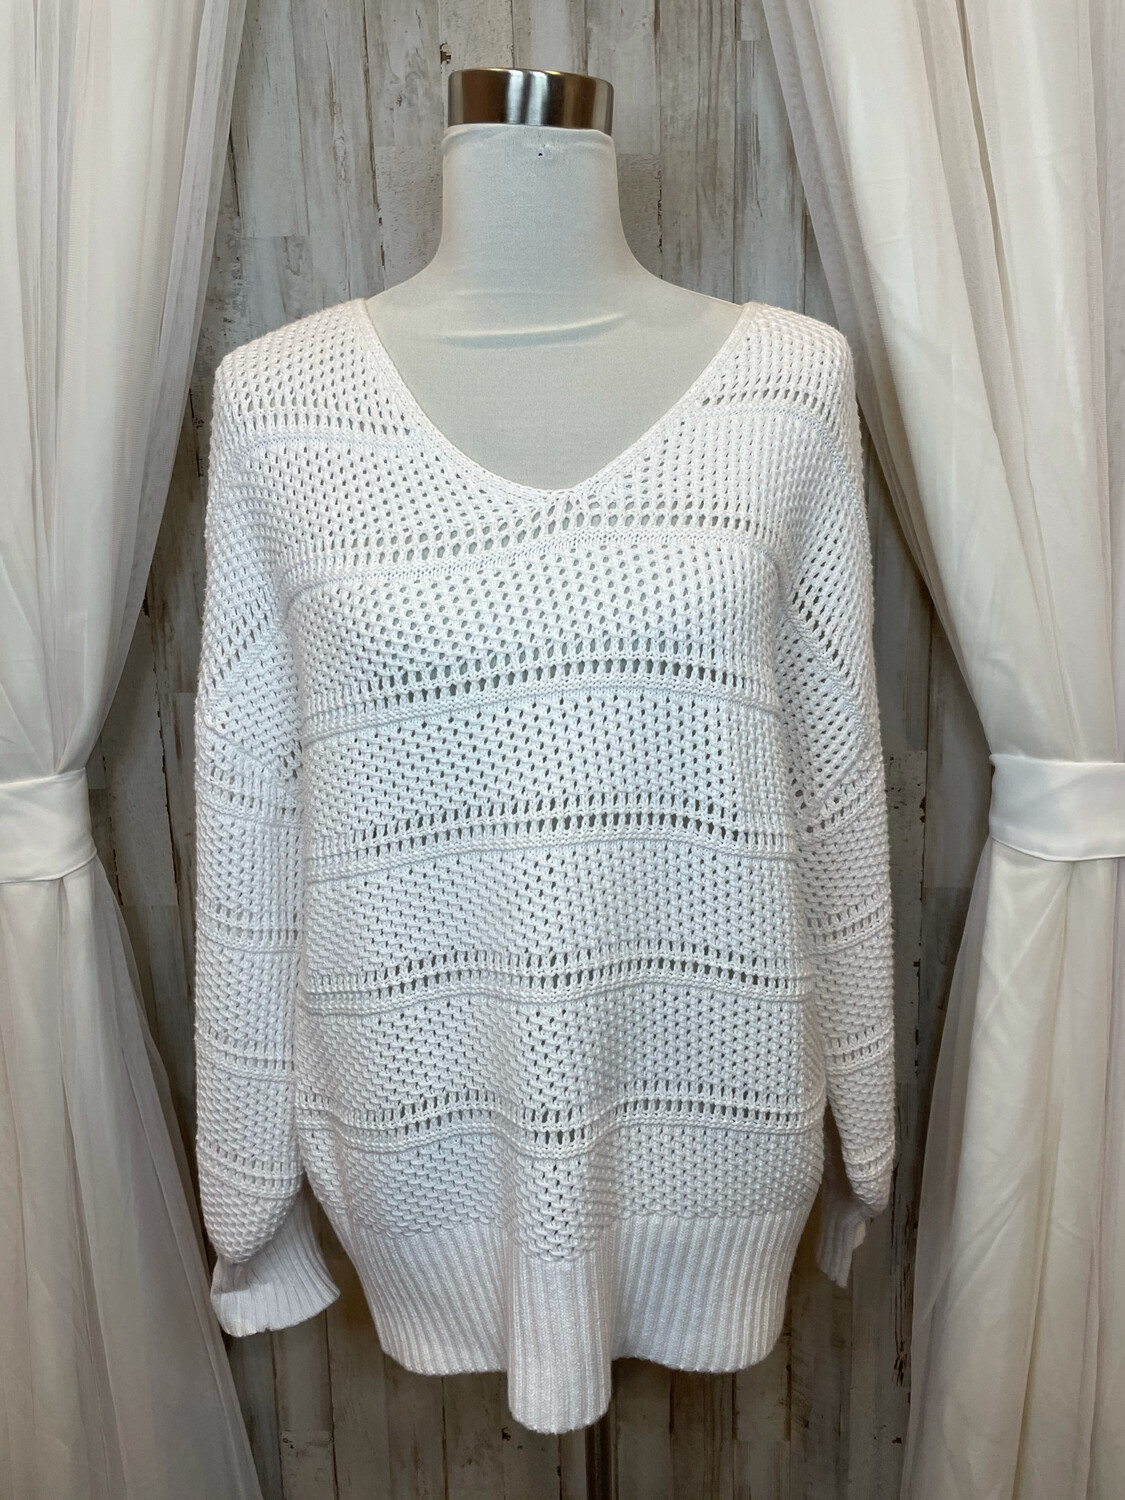 Tommy Bahama White Knit Sweater - L